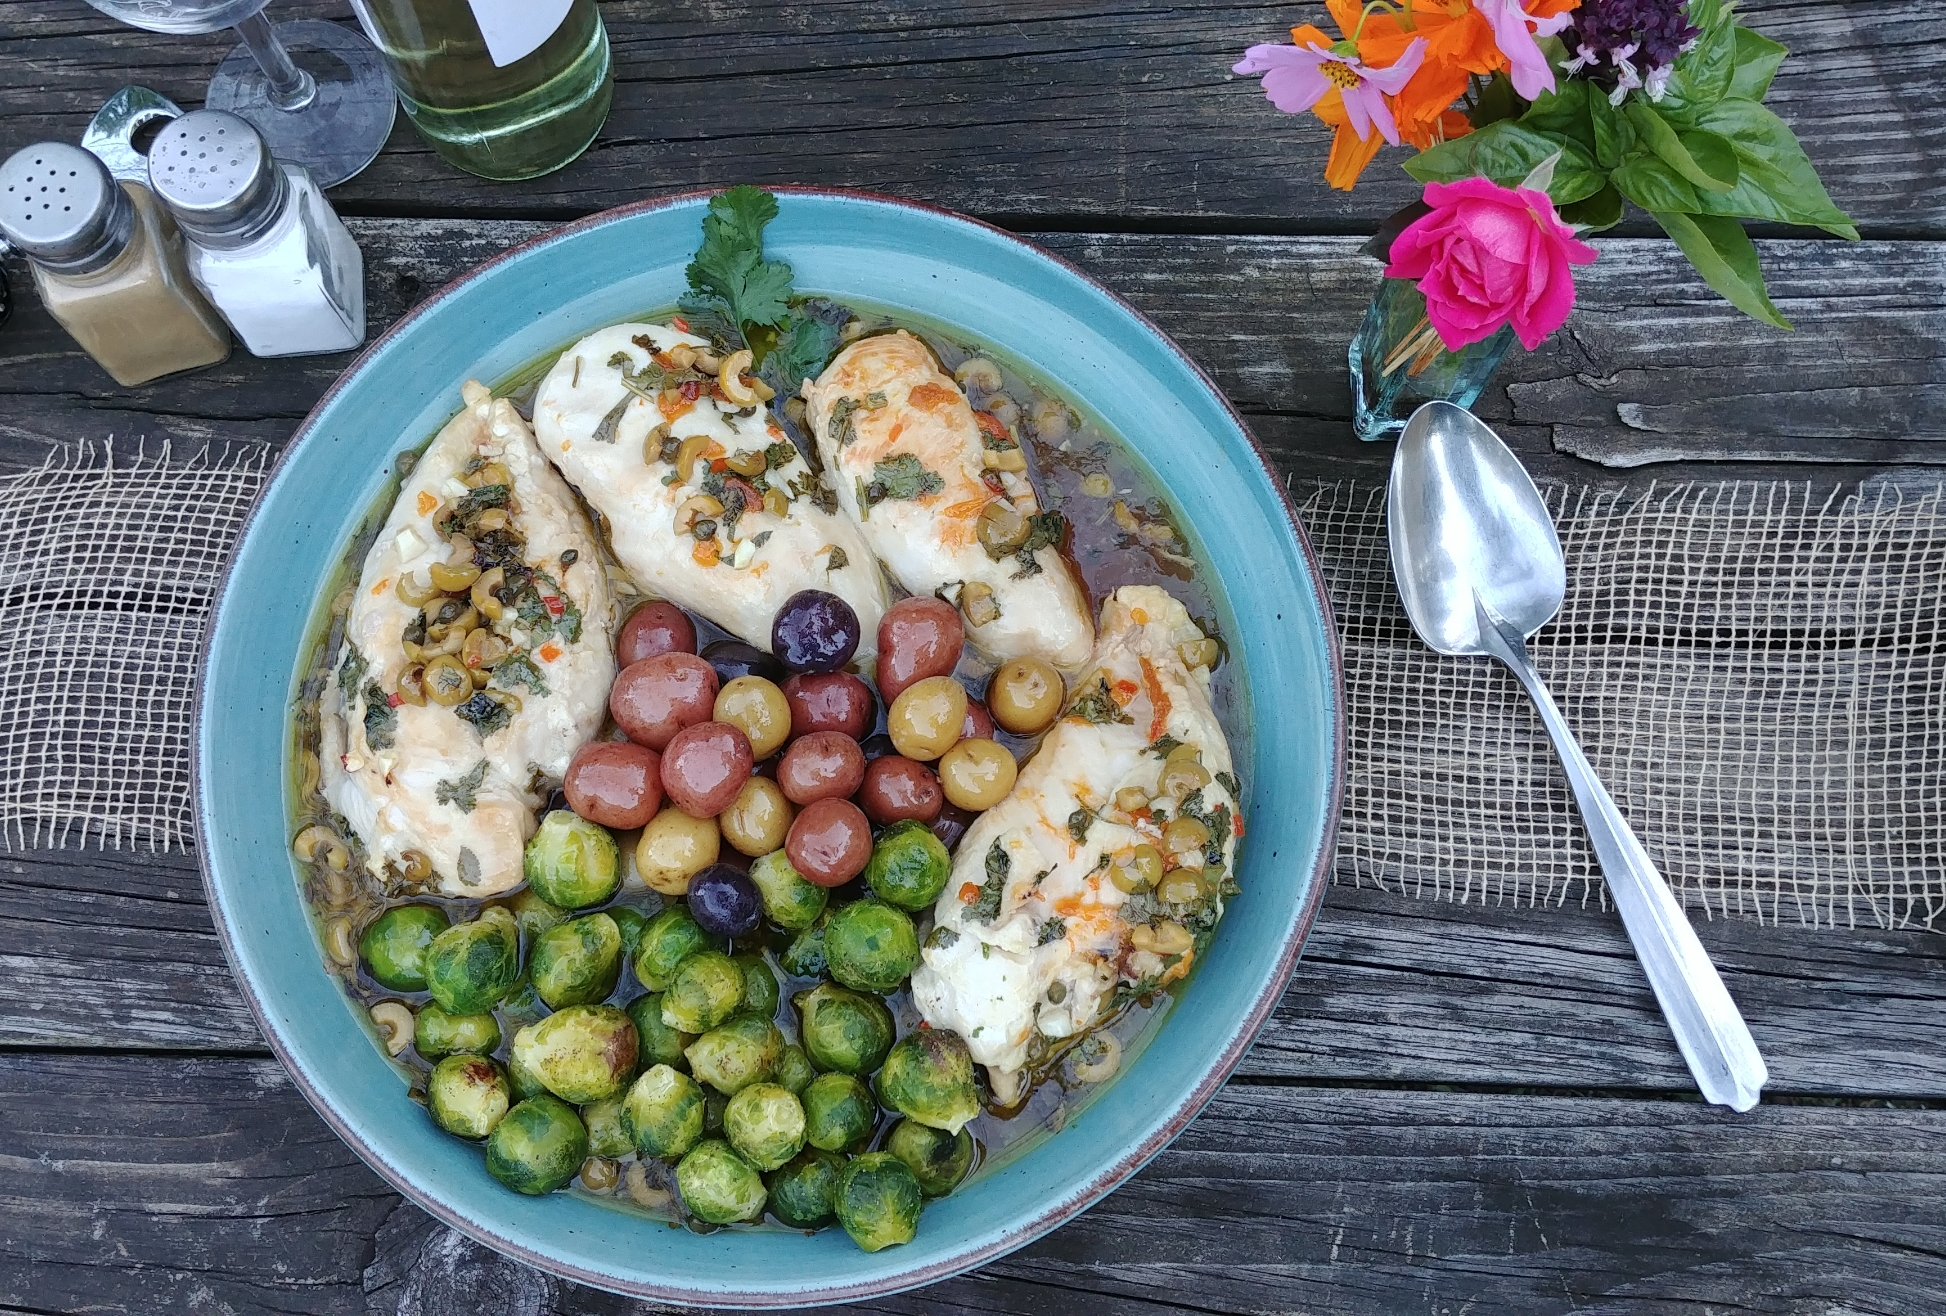 """Boneless chicken breasts with apricot jam, olives, red wine vinegar, and capers,"" says Ross Carozza. ""From some magazine, some place, at some time. It is one of my personal favorites."